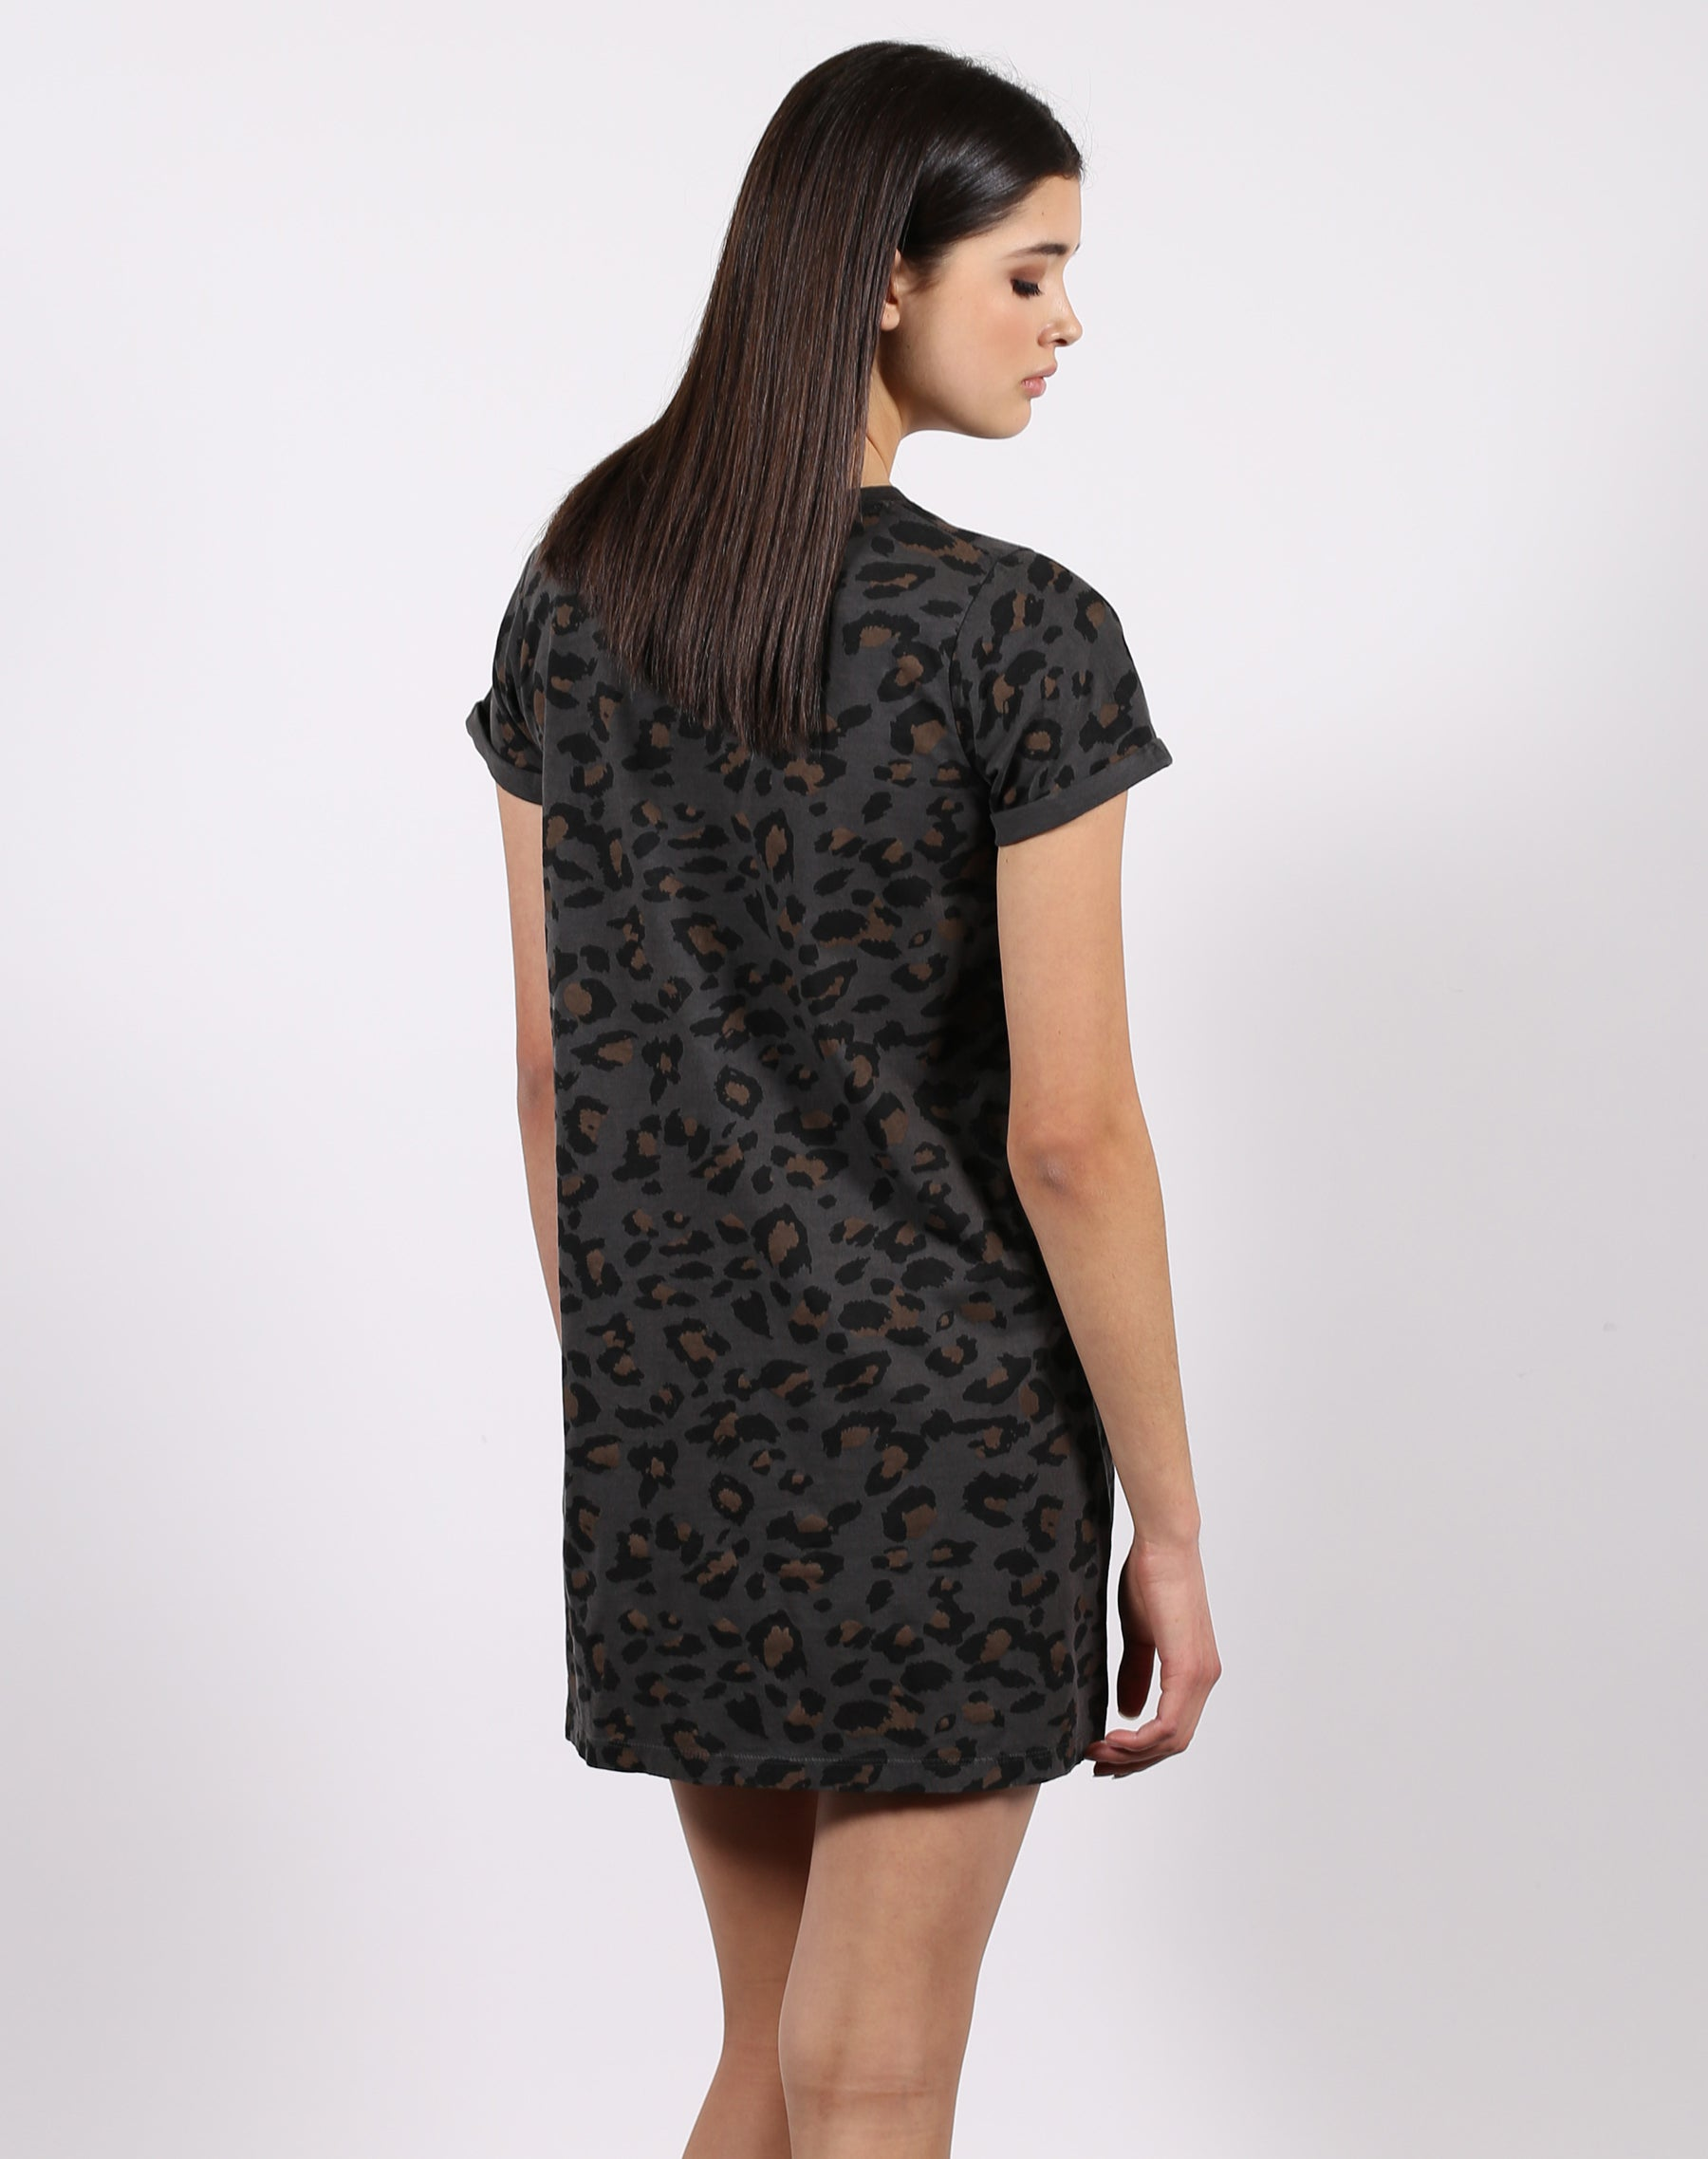 This is the back of the leopard slate t-shirt dress from the 1981 collection by Brunette the Label